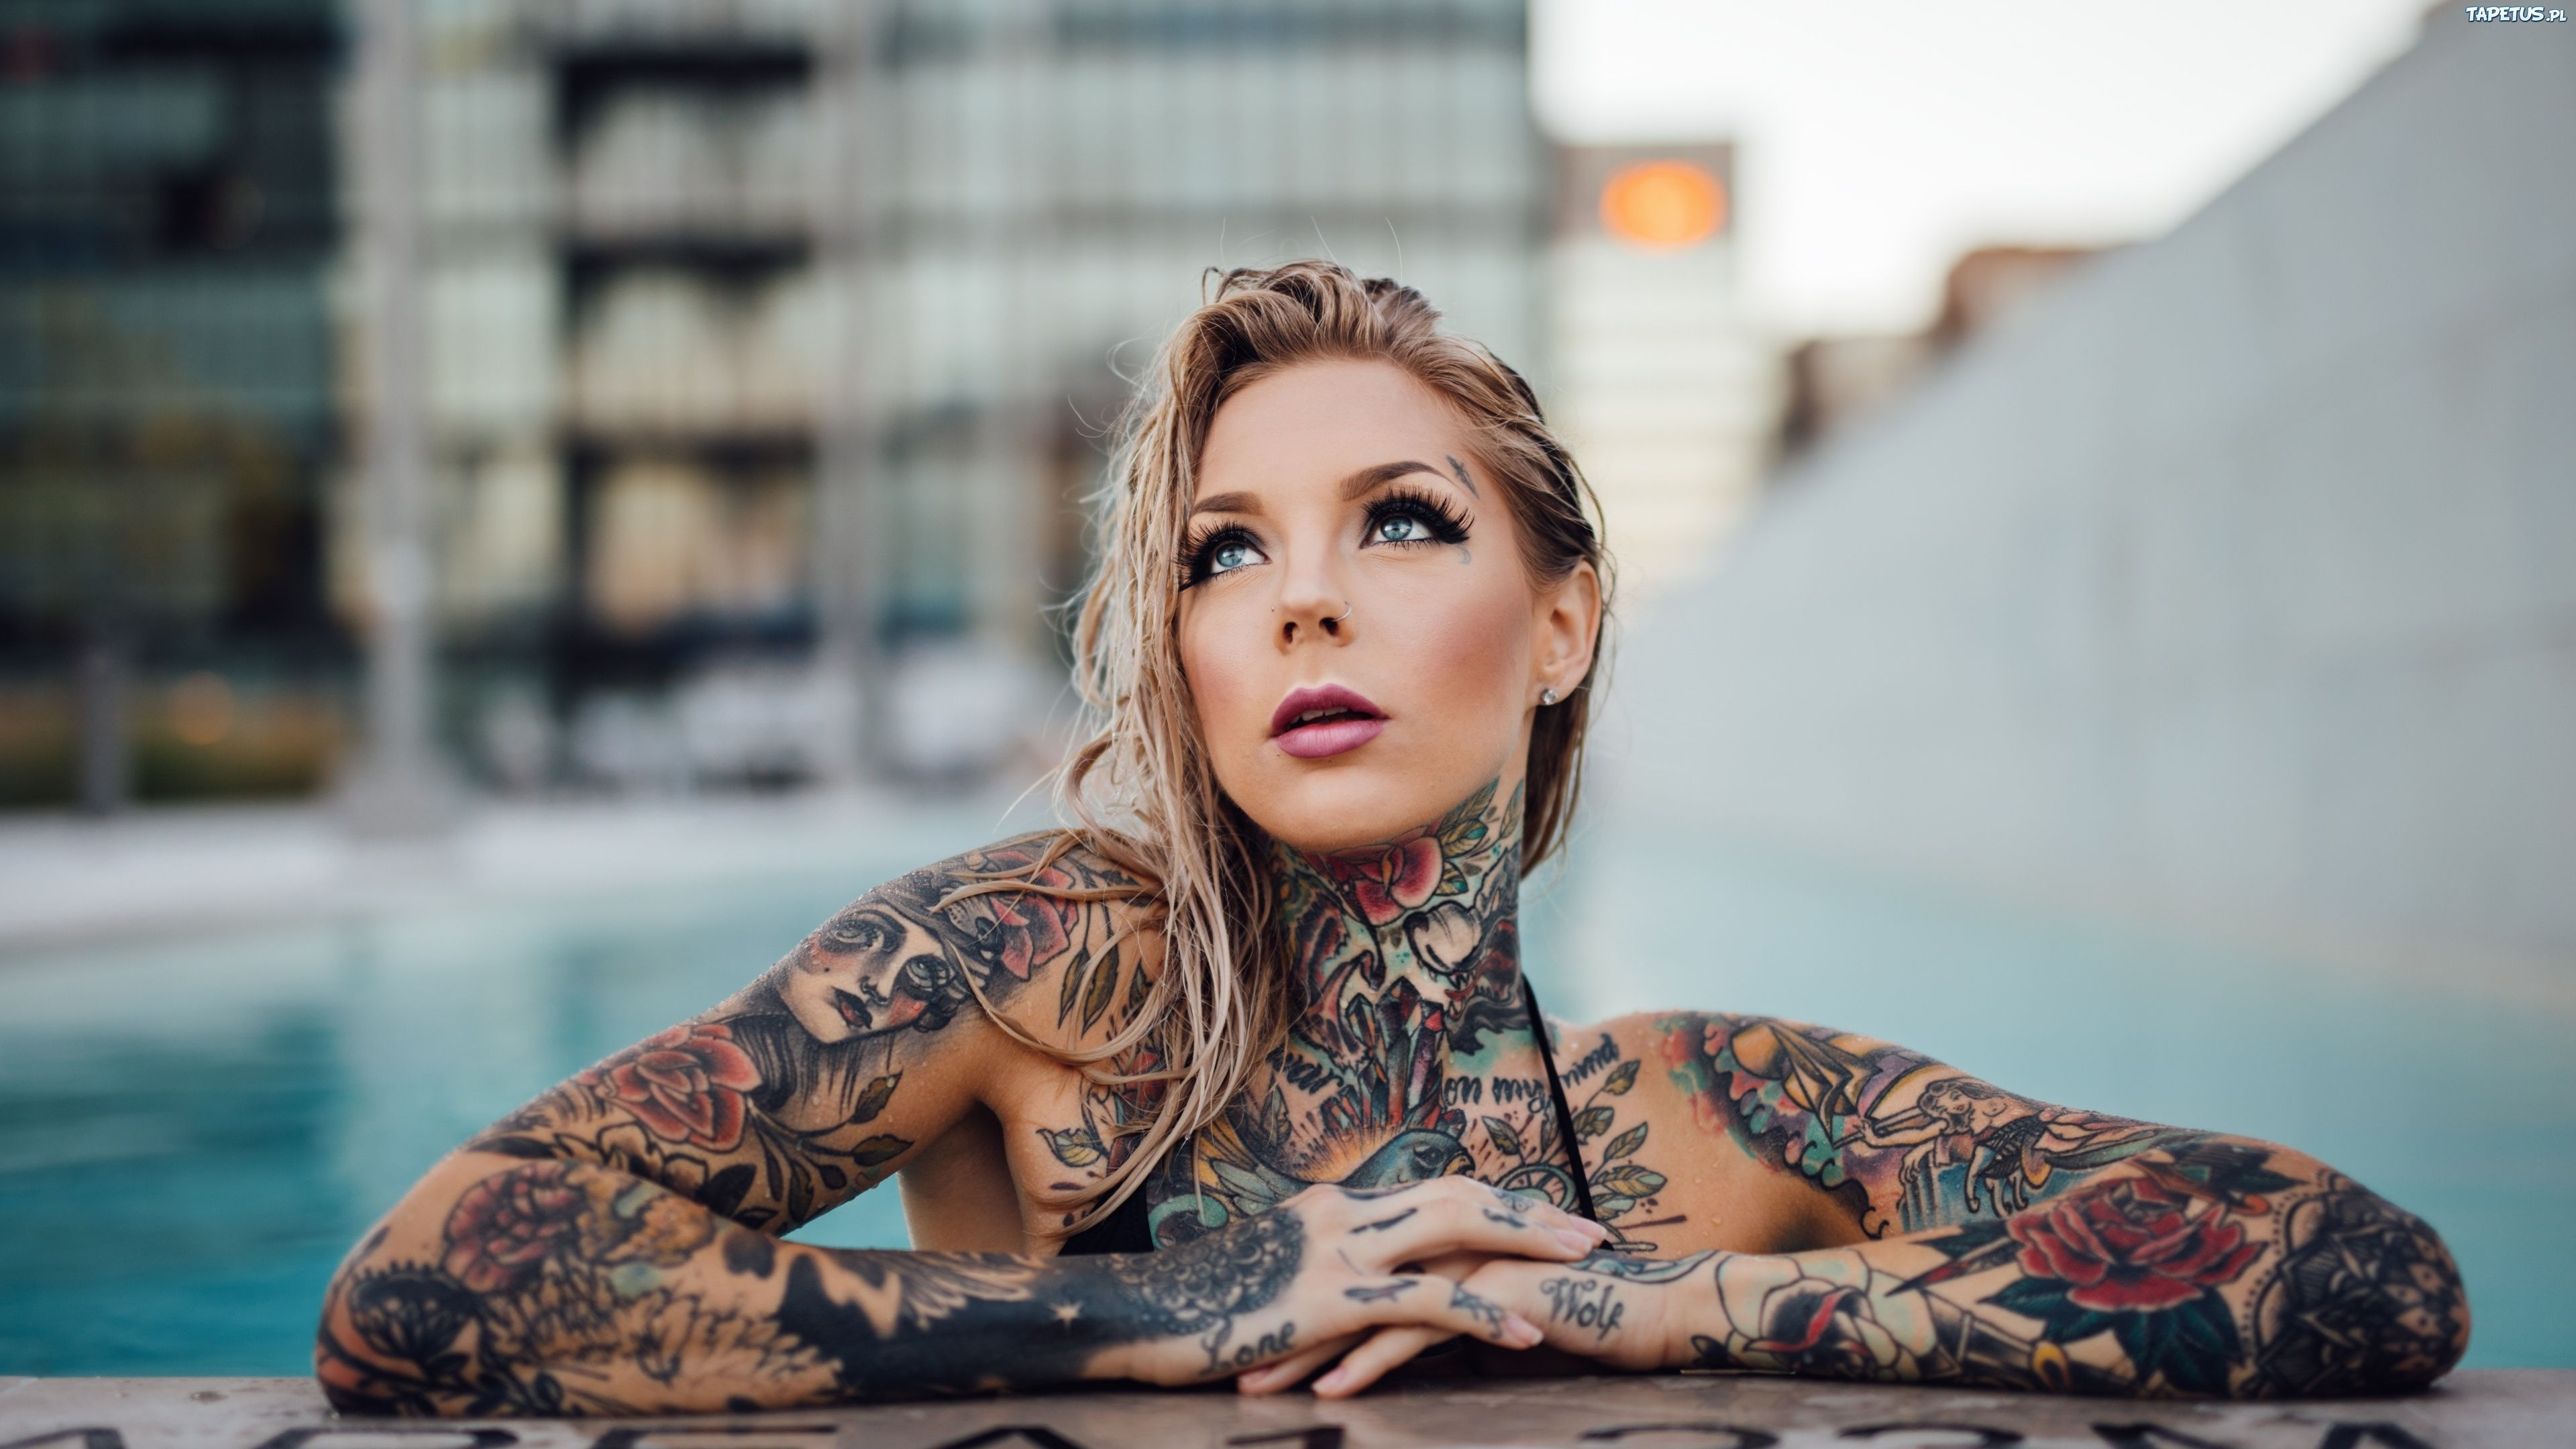 27 Tattoo Girl Wallpapers Wallpaperboat